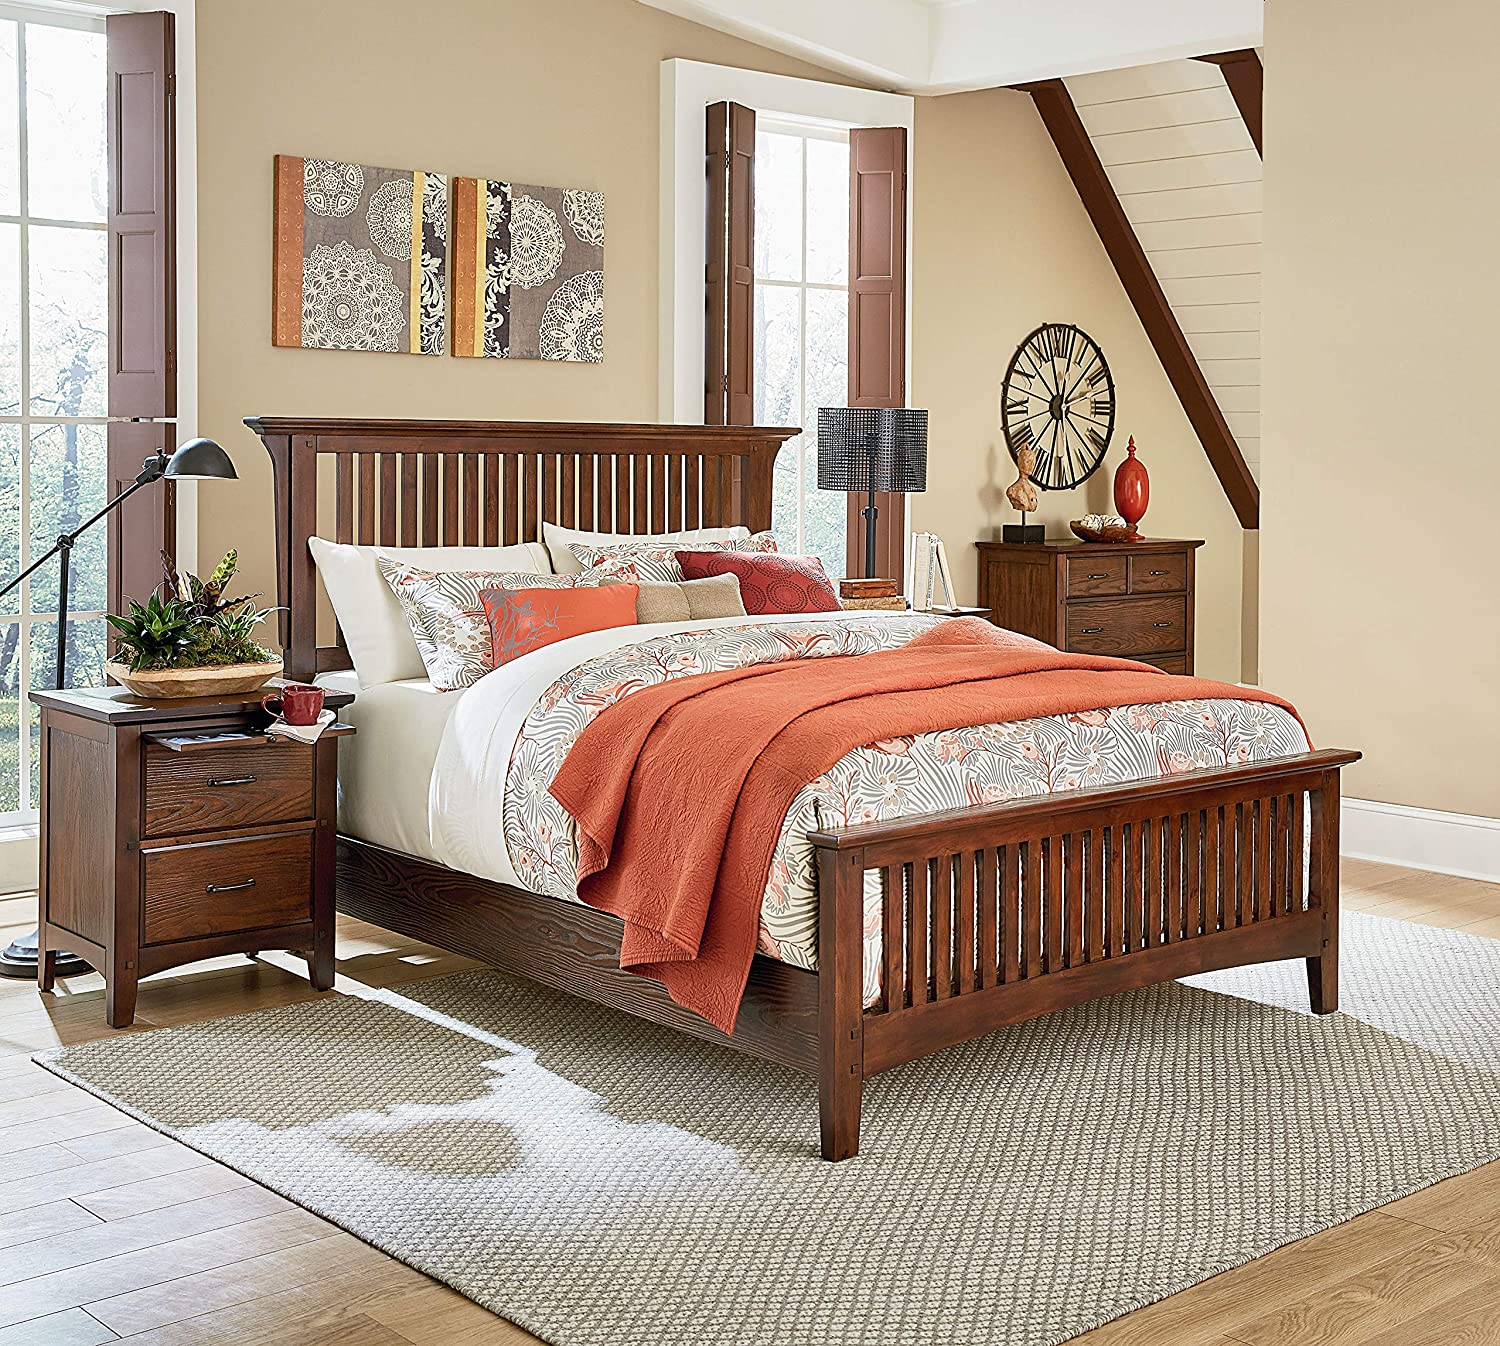 OSP Home Furnishings Modern Mission Vintage Oak Bedroom Set with 2 Nightstands and 1 Chest, Queen